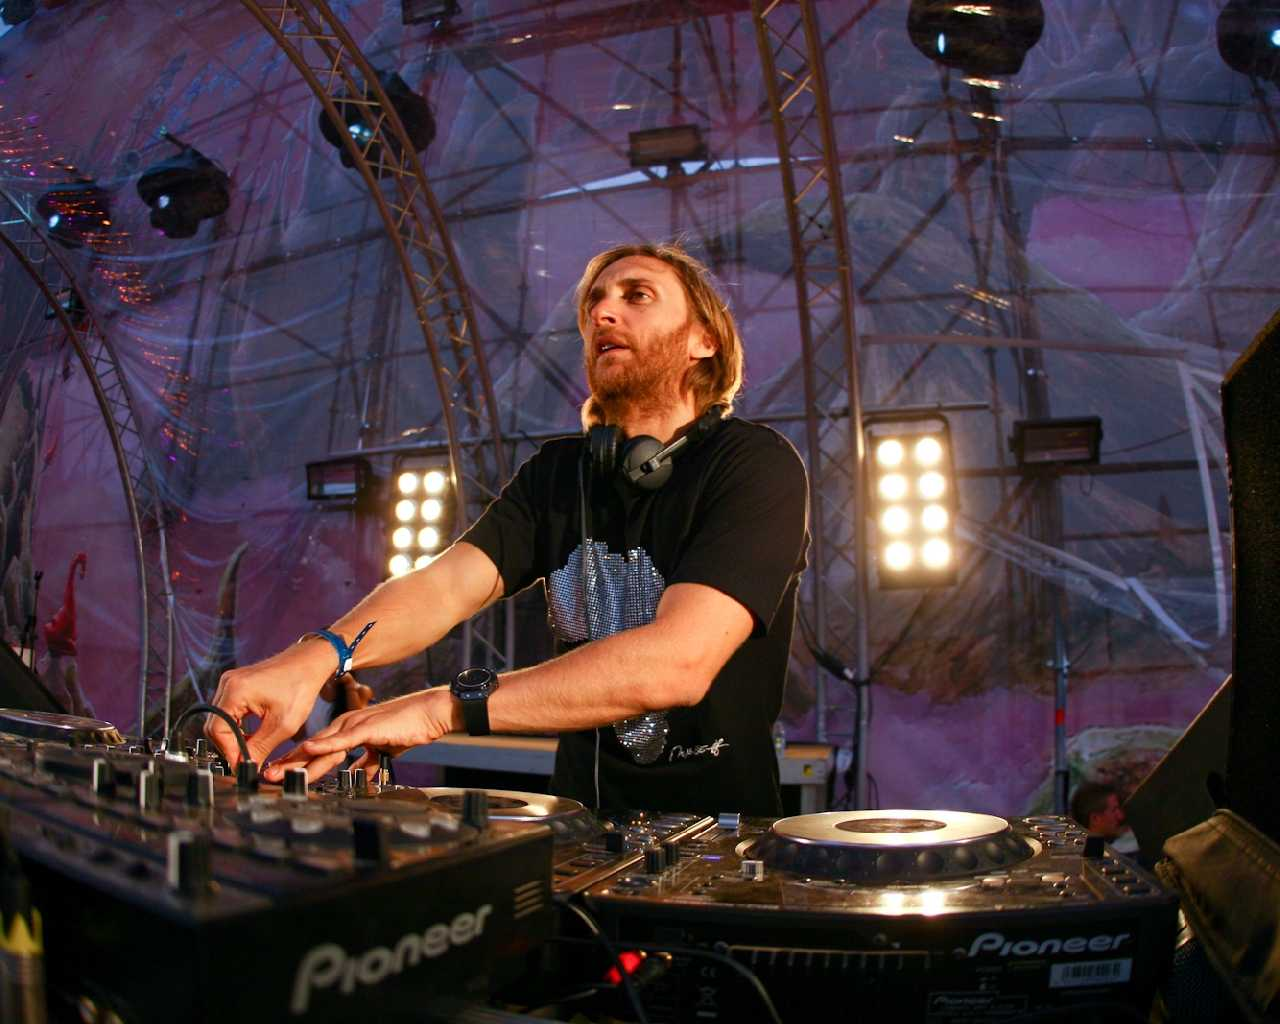 The Best Wallpaper For Iphone 7 Plus 30 Best David Guetta Photographs Which Is Rocking Hdpixels